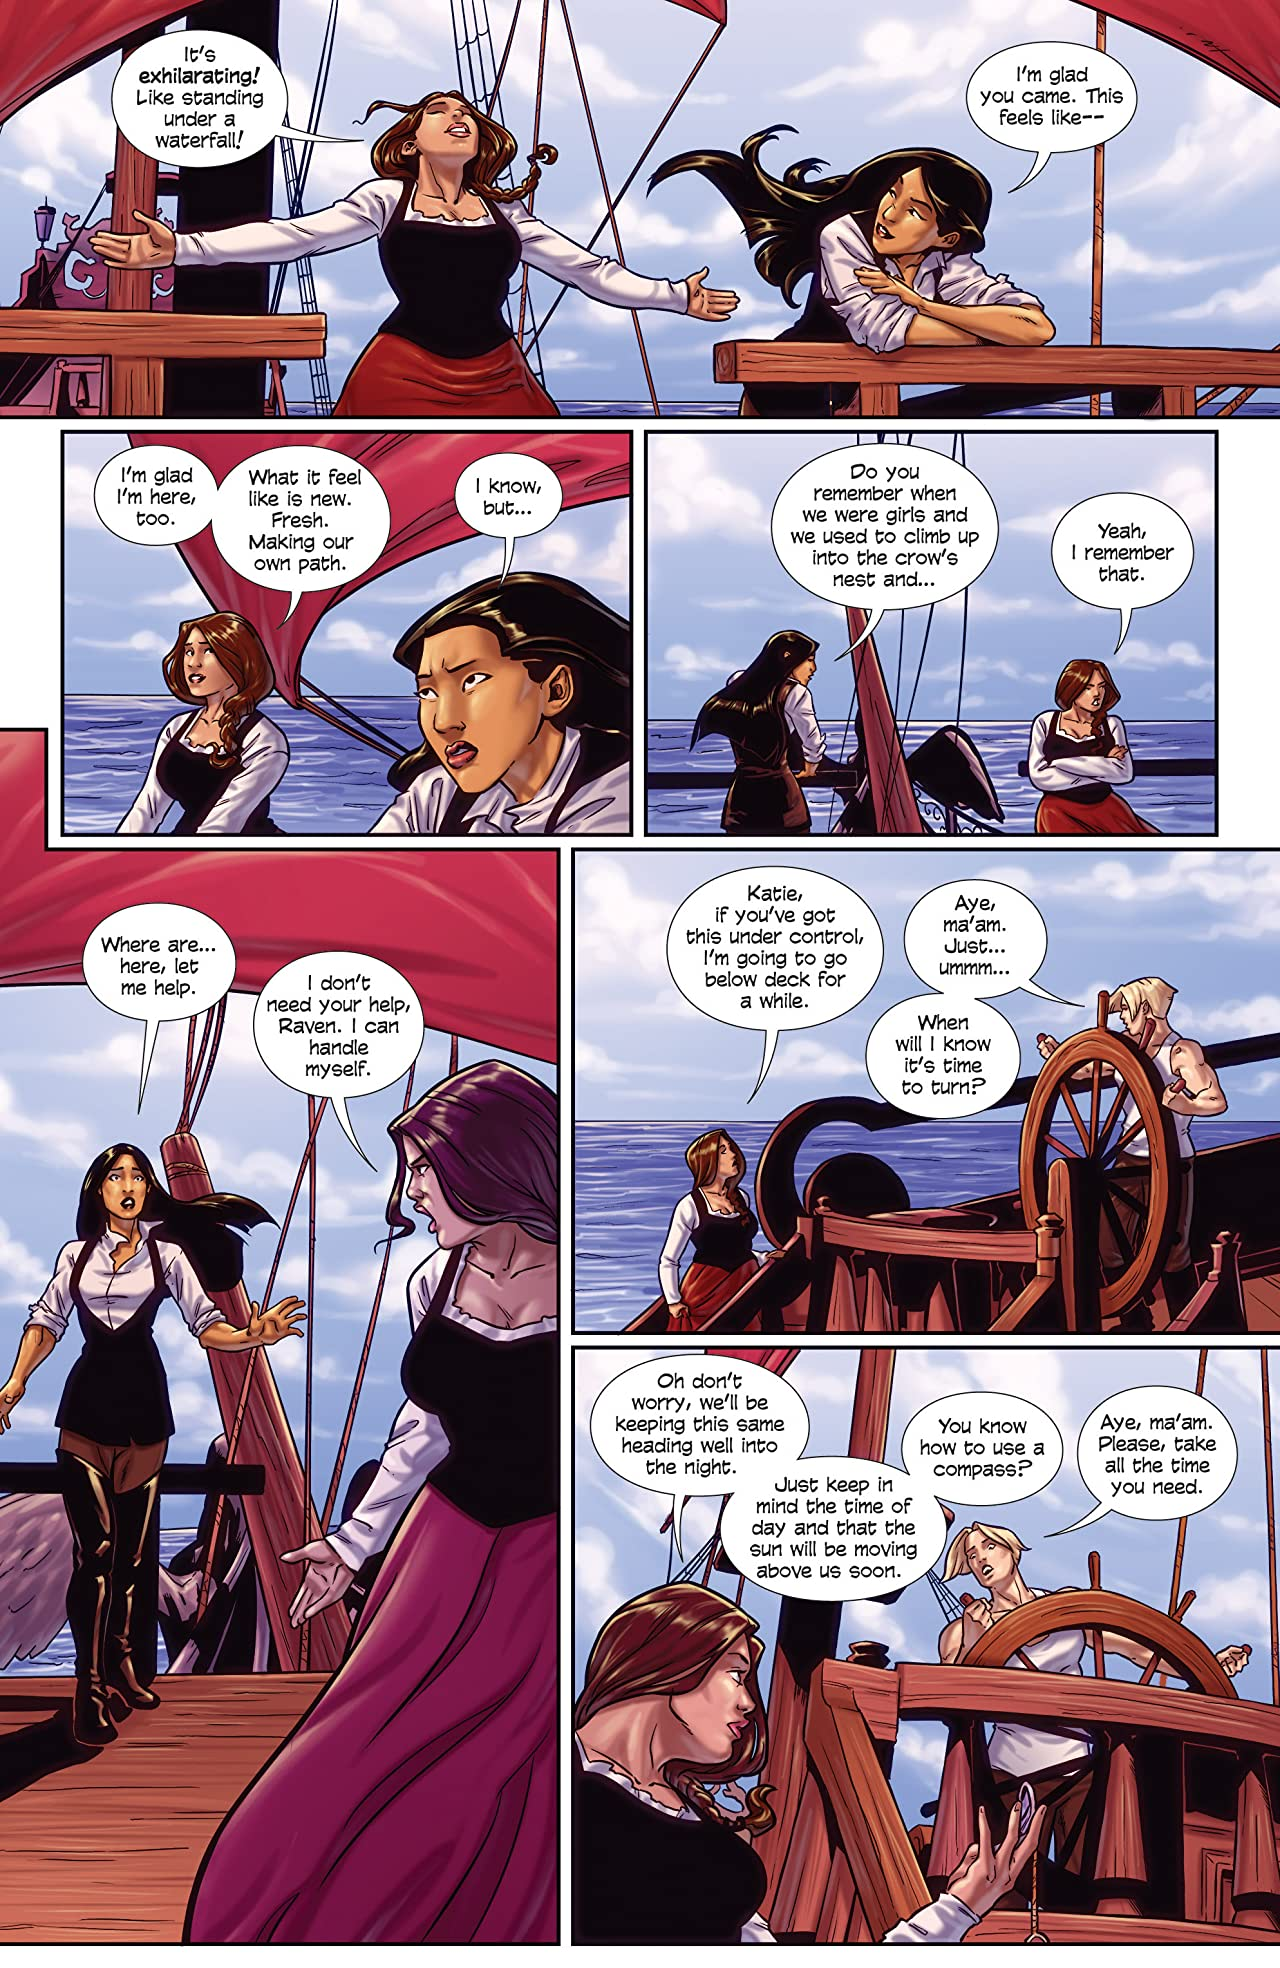 Princeless- Raven: The Pirate Princess Vol. 2: Free Women